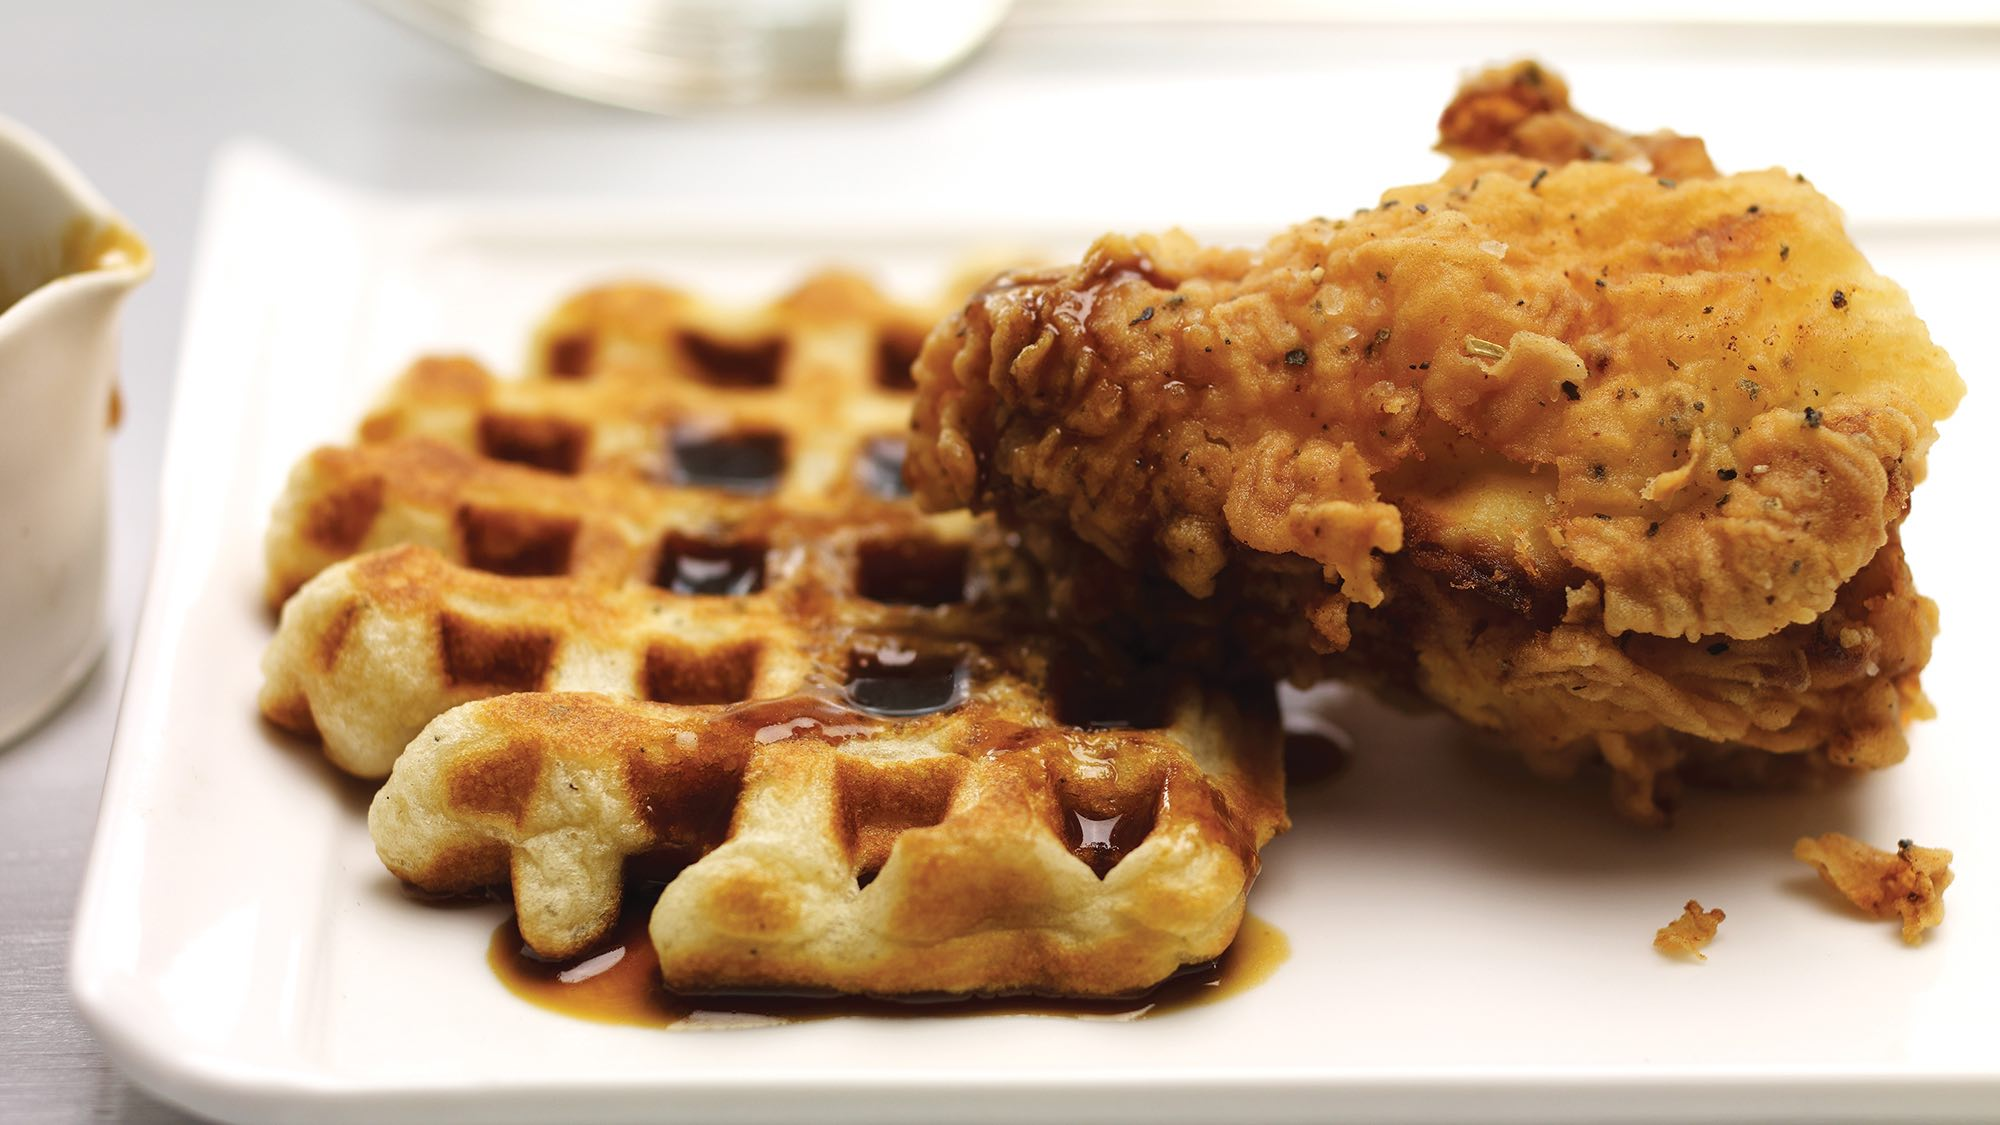 McCormick Fried Chicken and Waffles with Molasses Cider Syrup